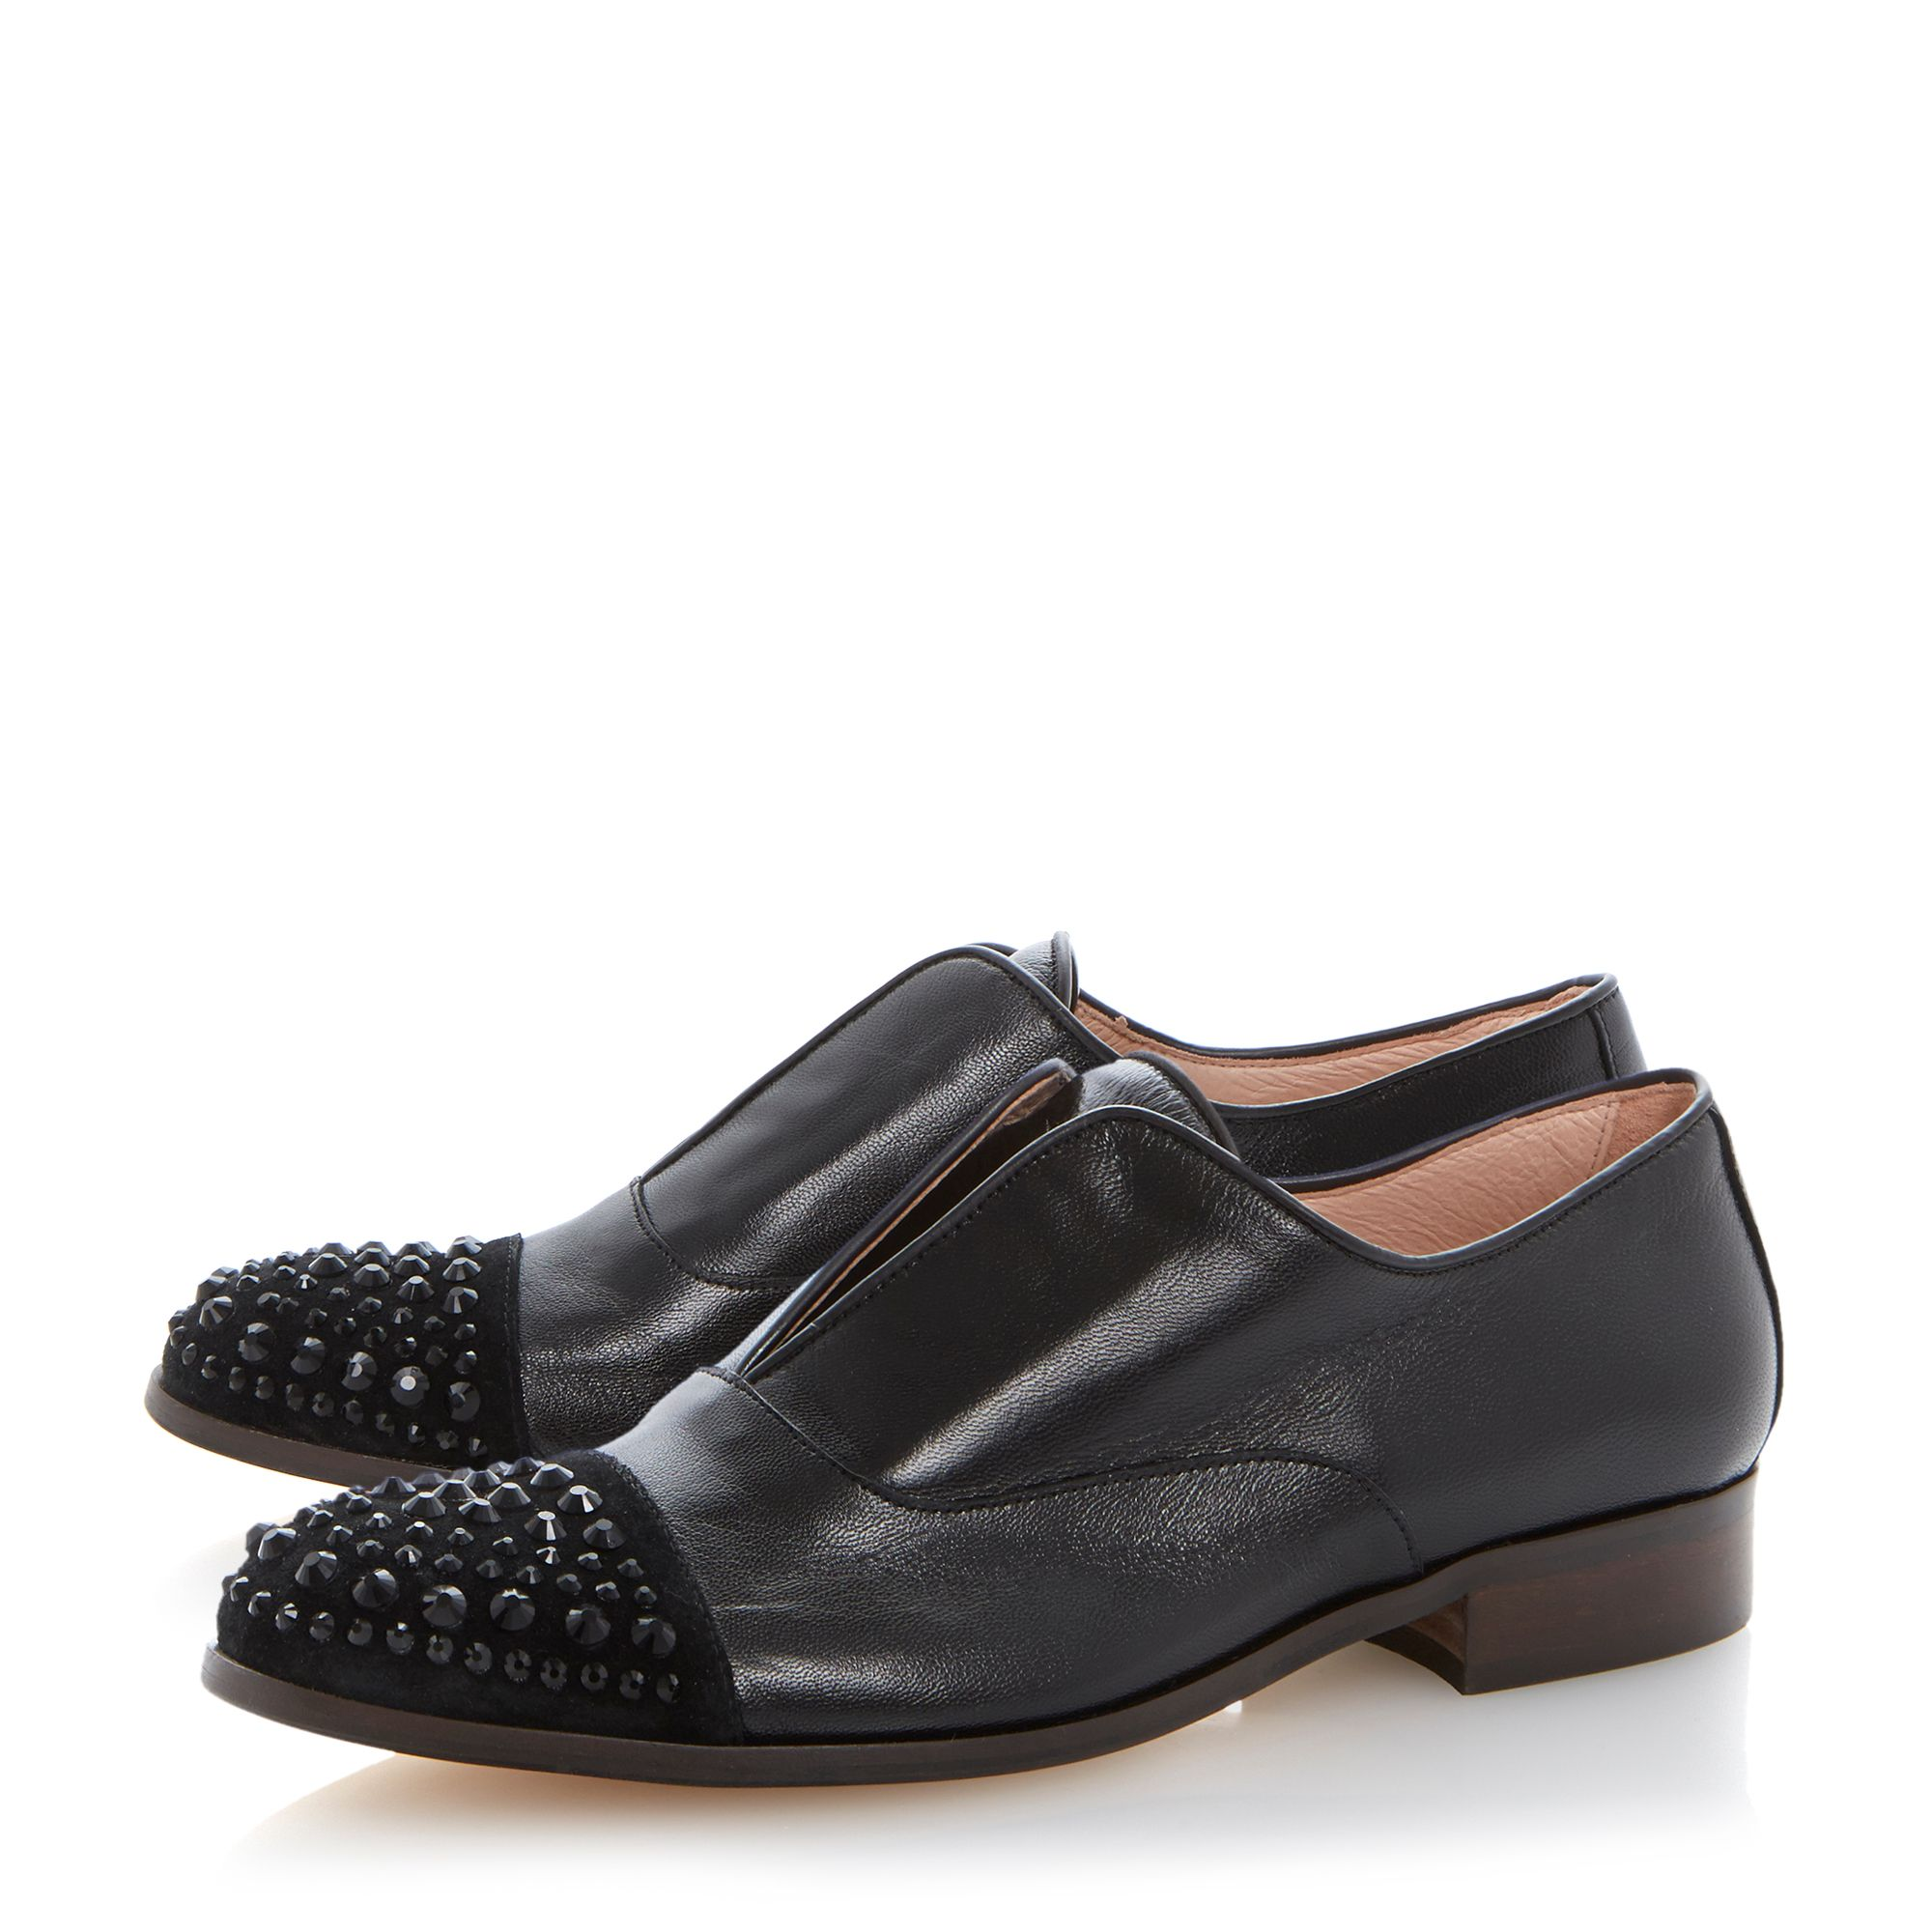 Harri leather round toe loafer shoes